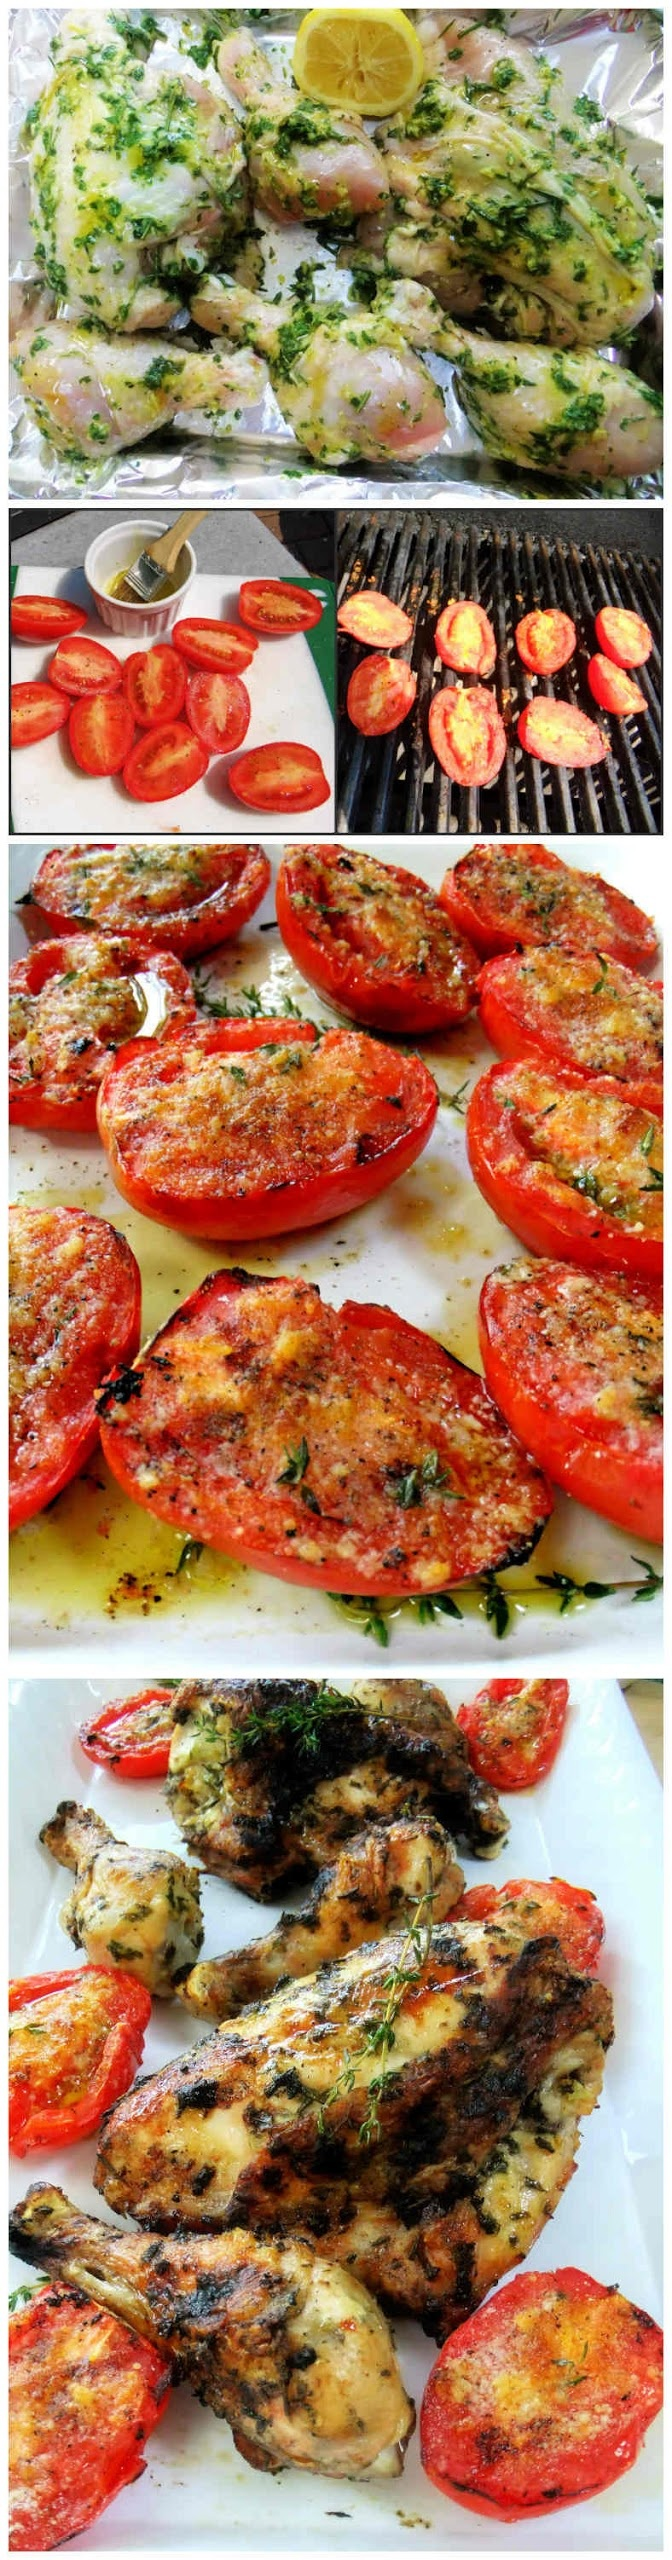 Garlic Grilled Tomatoes Angela and Danny Rossetti  Advocare Independent Distributors #130433273 www.realdealsontheweb.com www.advocare.com/130433273 arossettiadvospark30@gmail.com rossettidanny@gmail.com